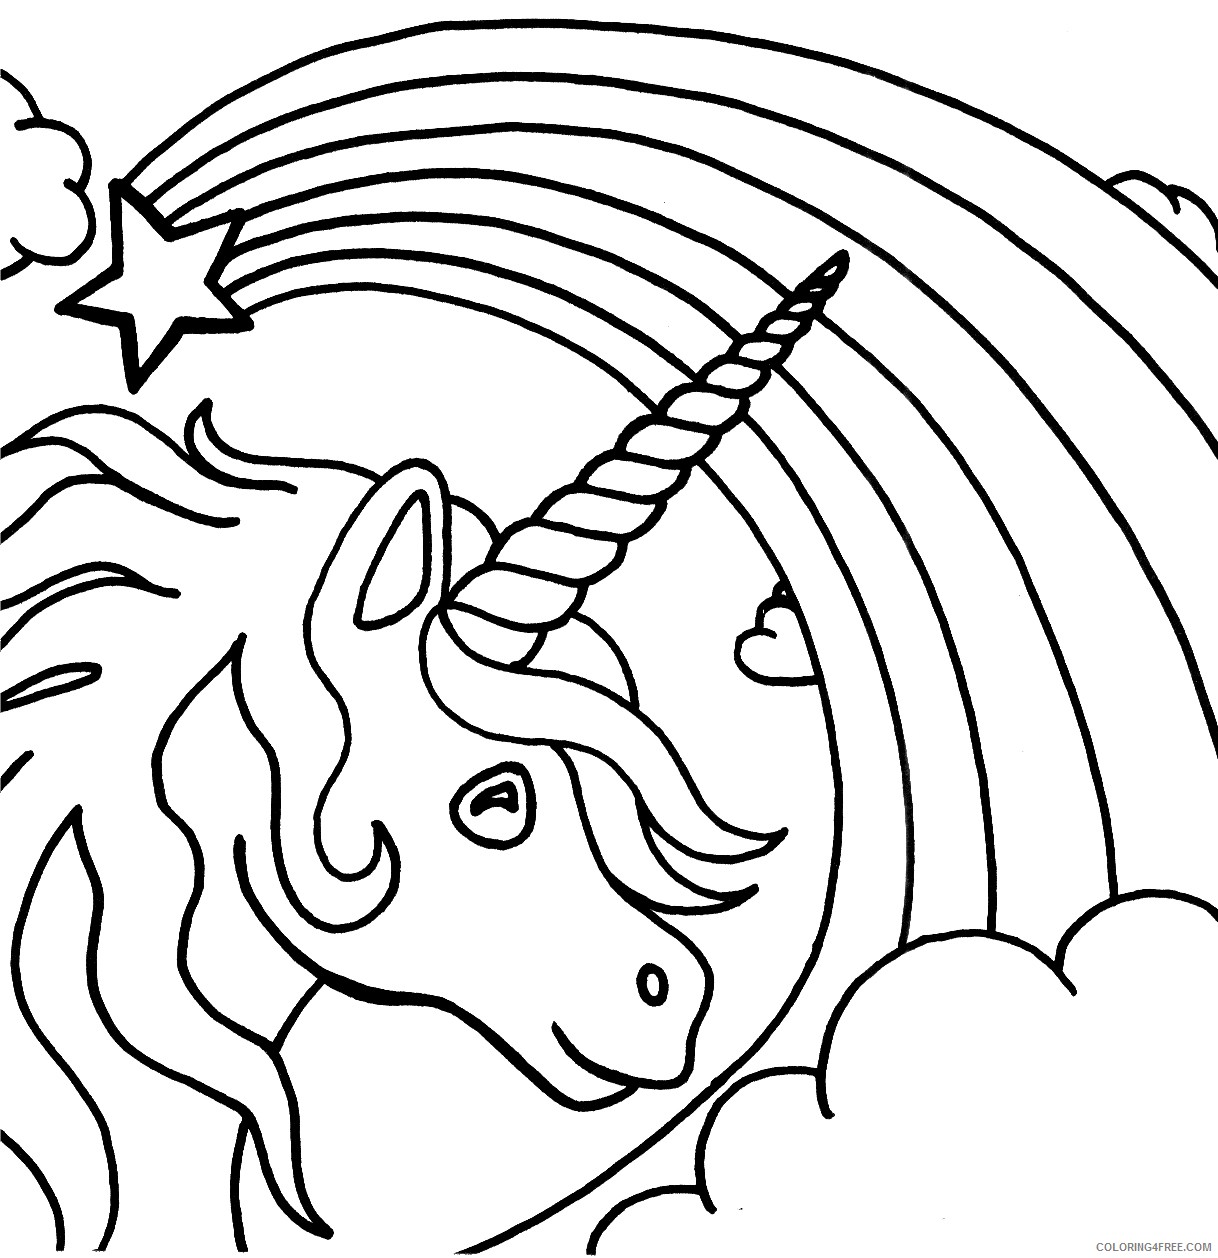 unicorn coloring pages with star rainbow Coloring4free